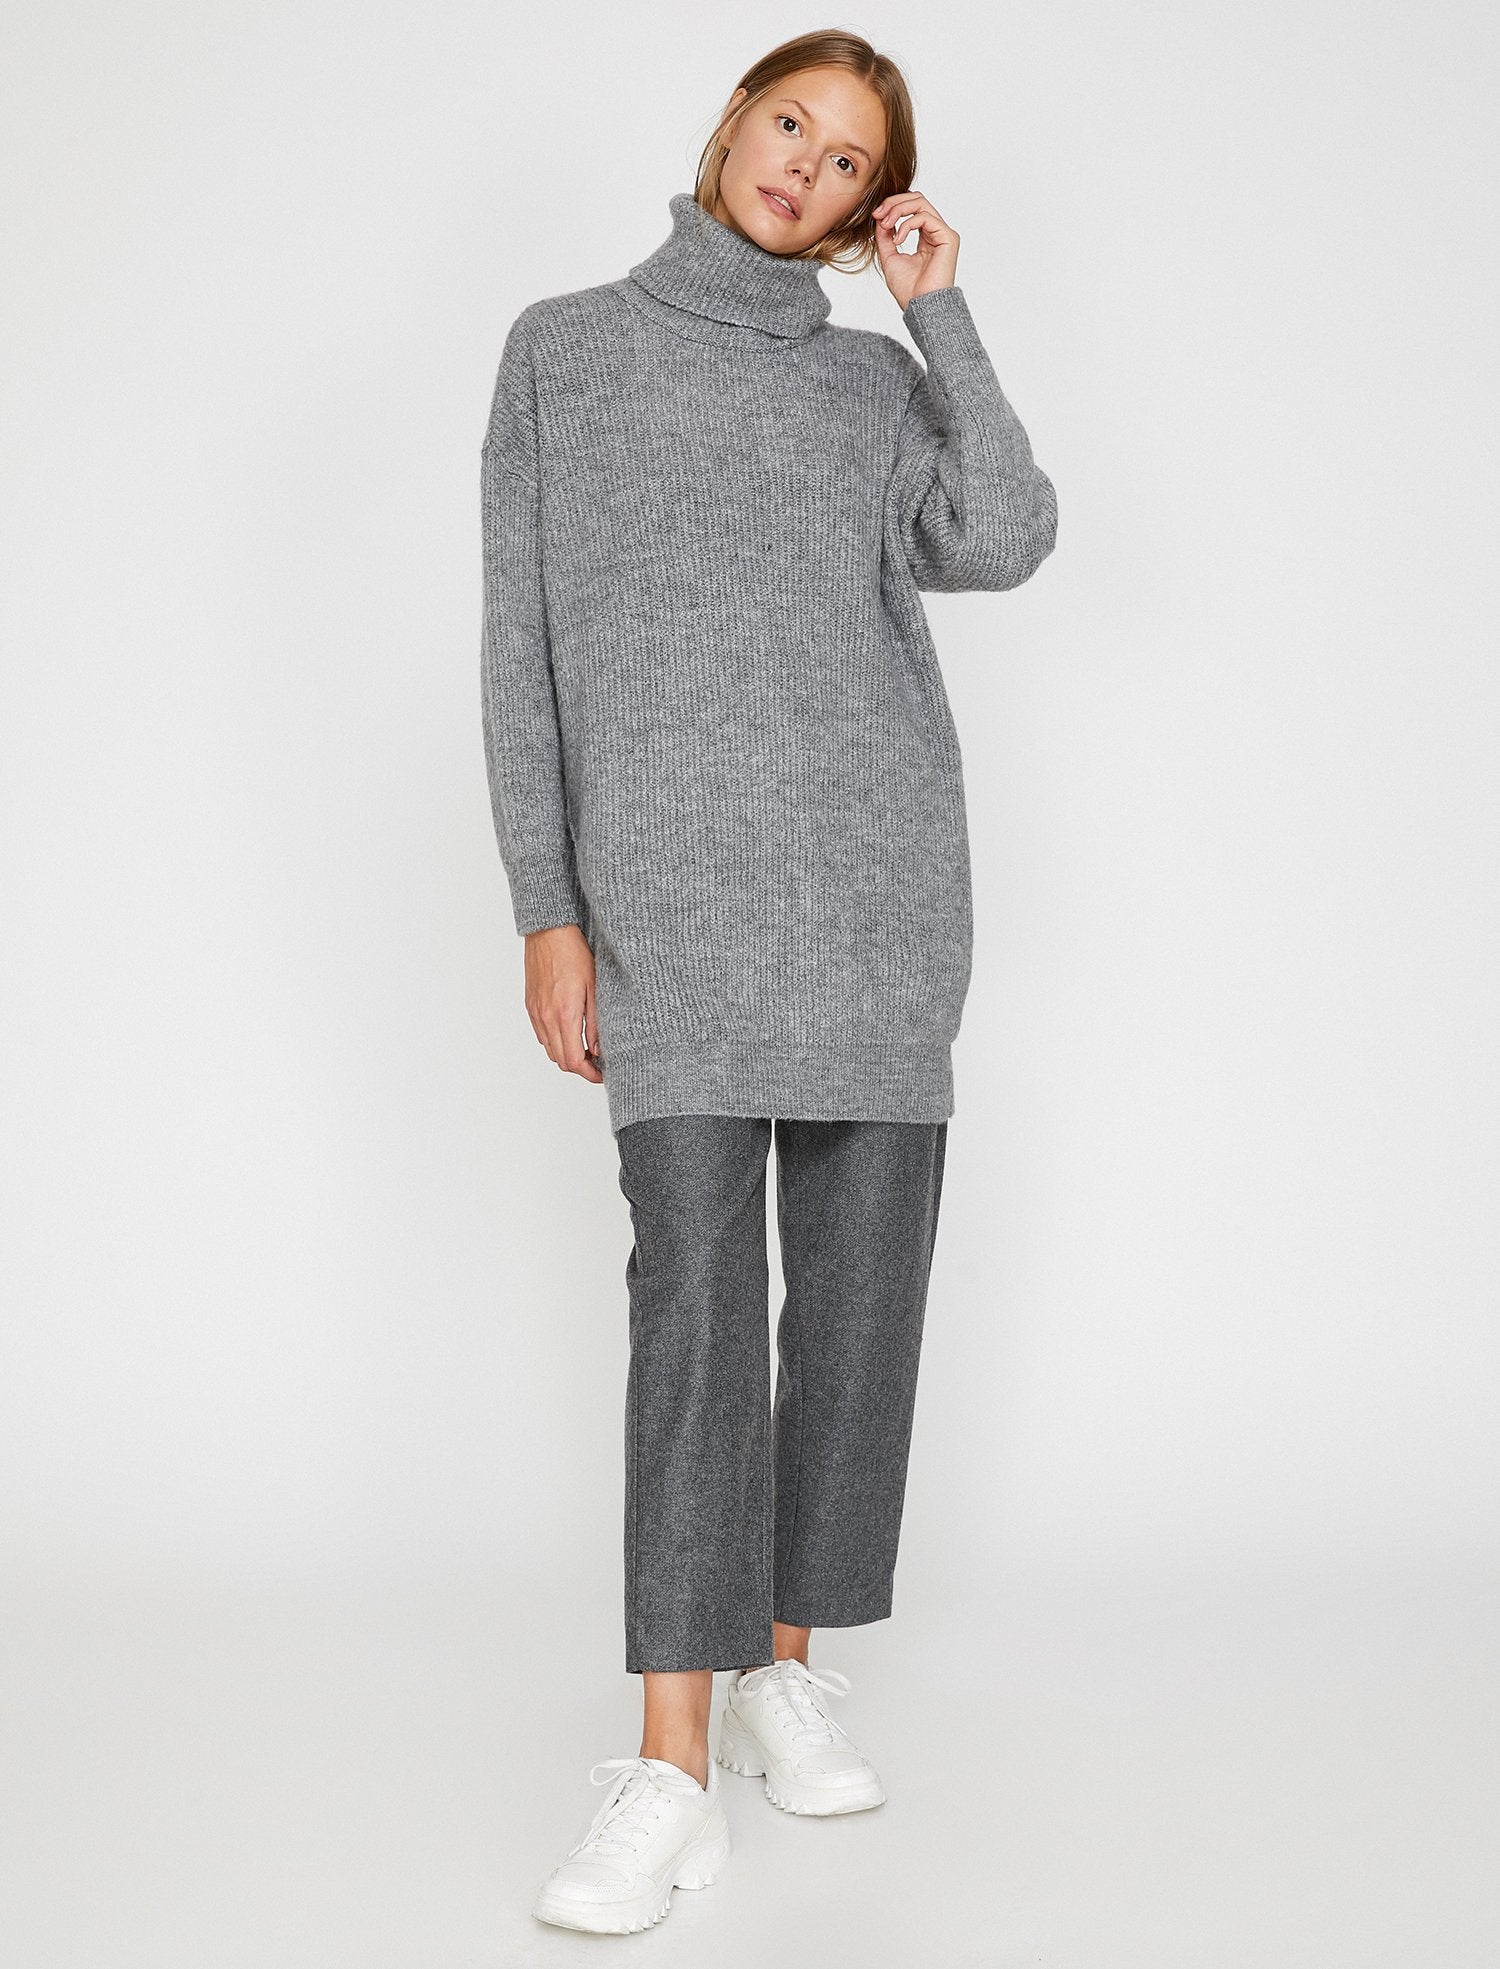 Oversize Turtle Neck Sweater in Grey Heather